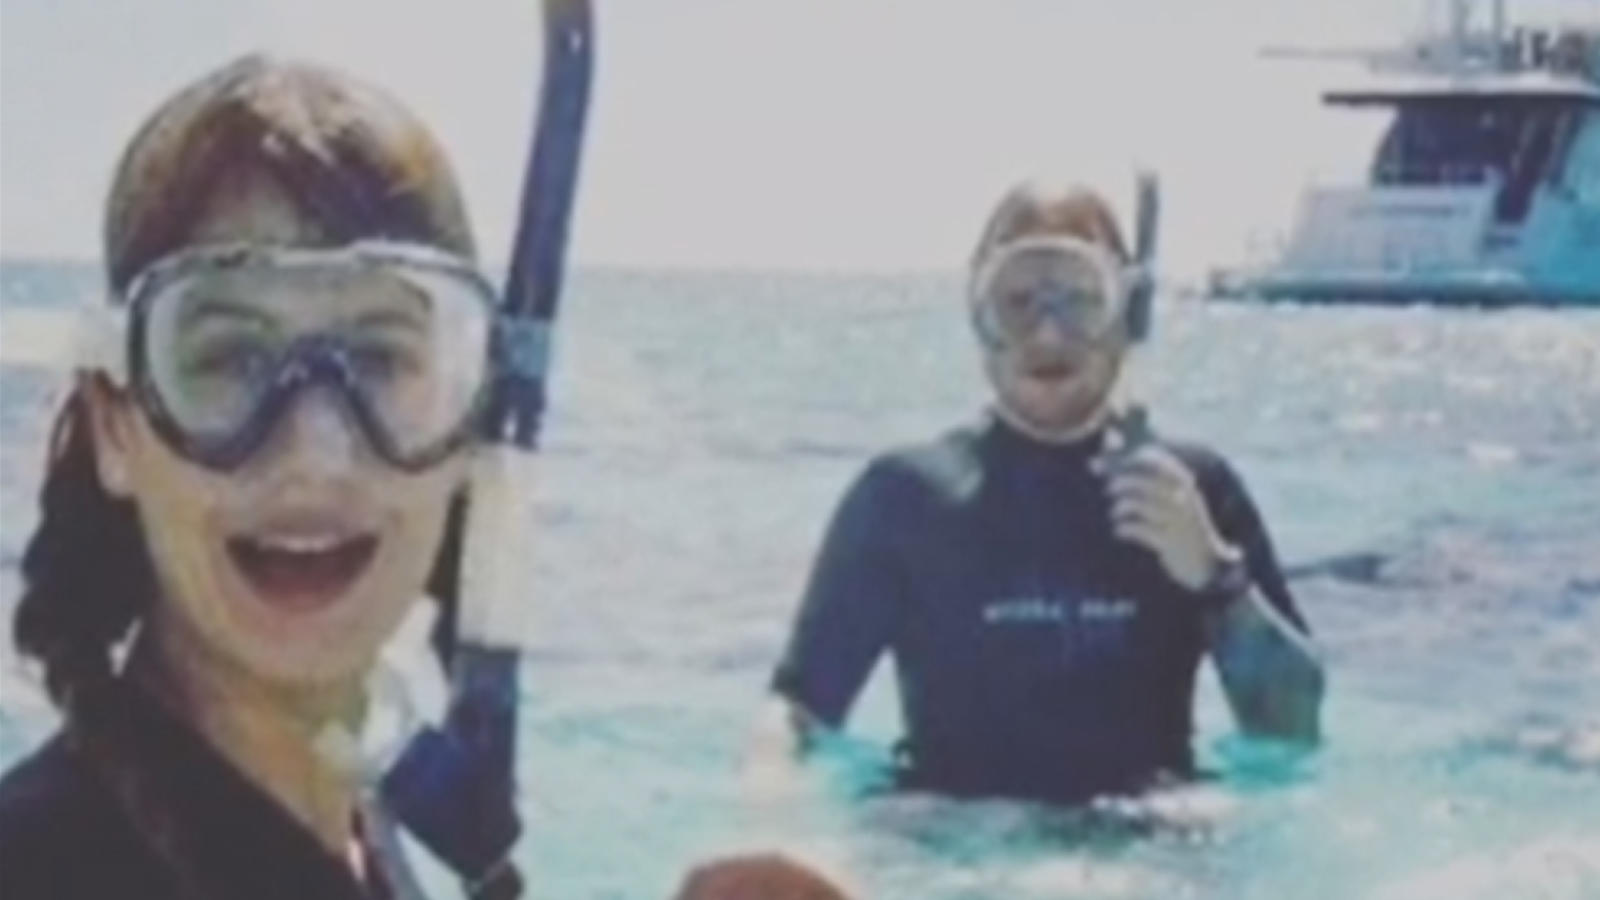 Ed Sheeran and Cherry Seaborn's love story in pictures